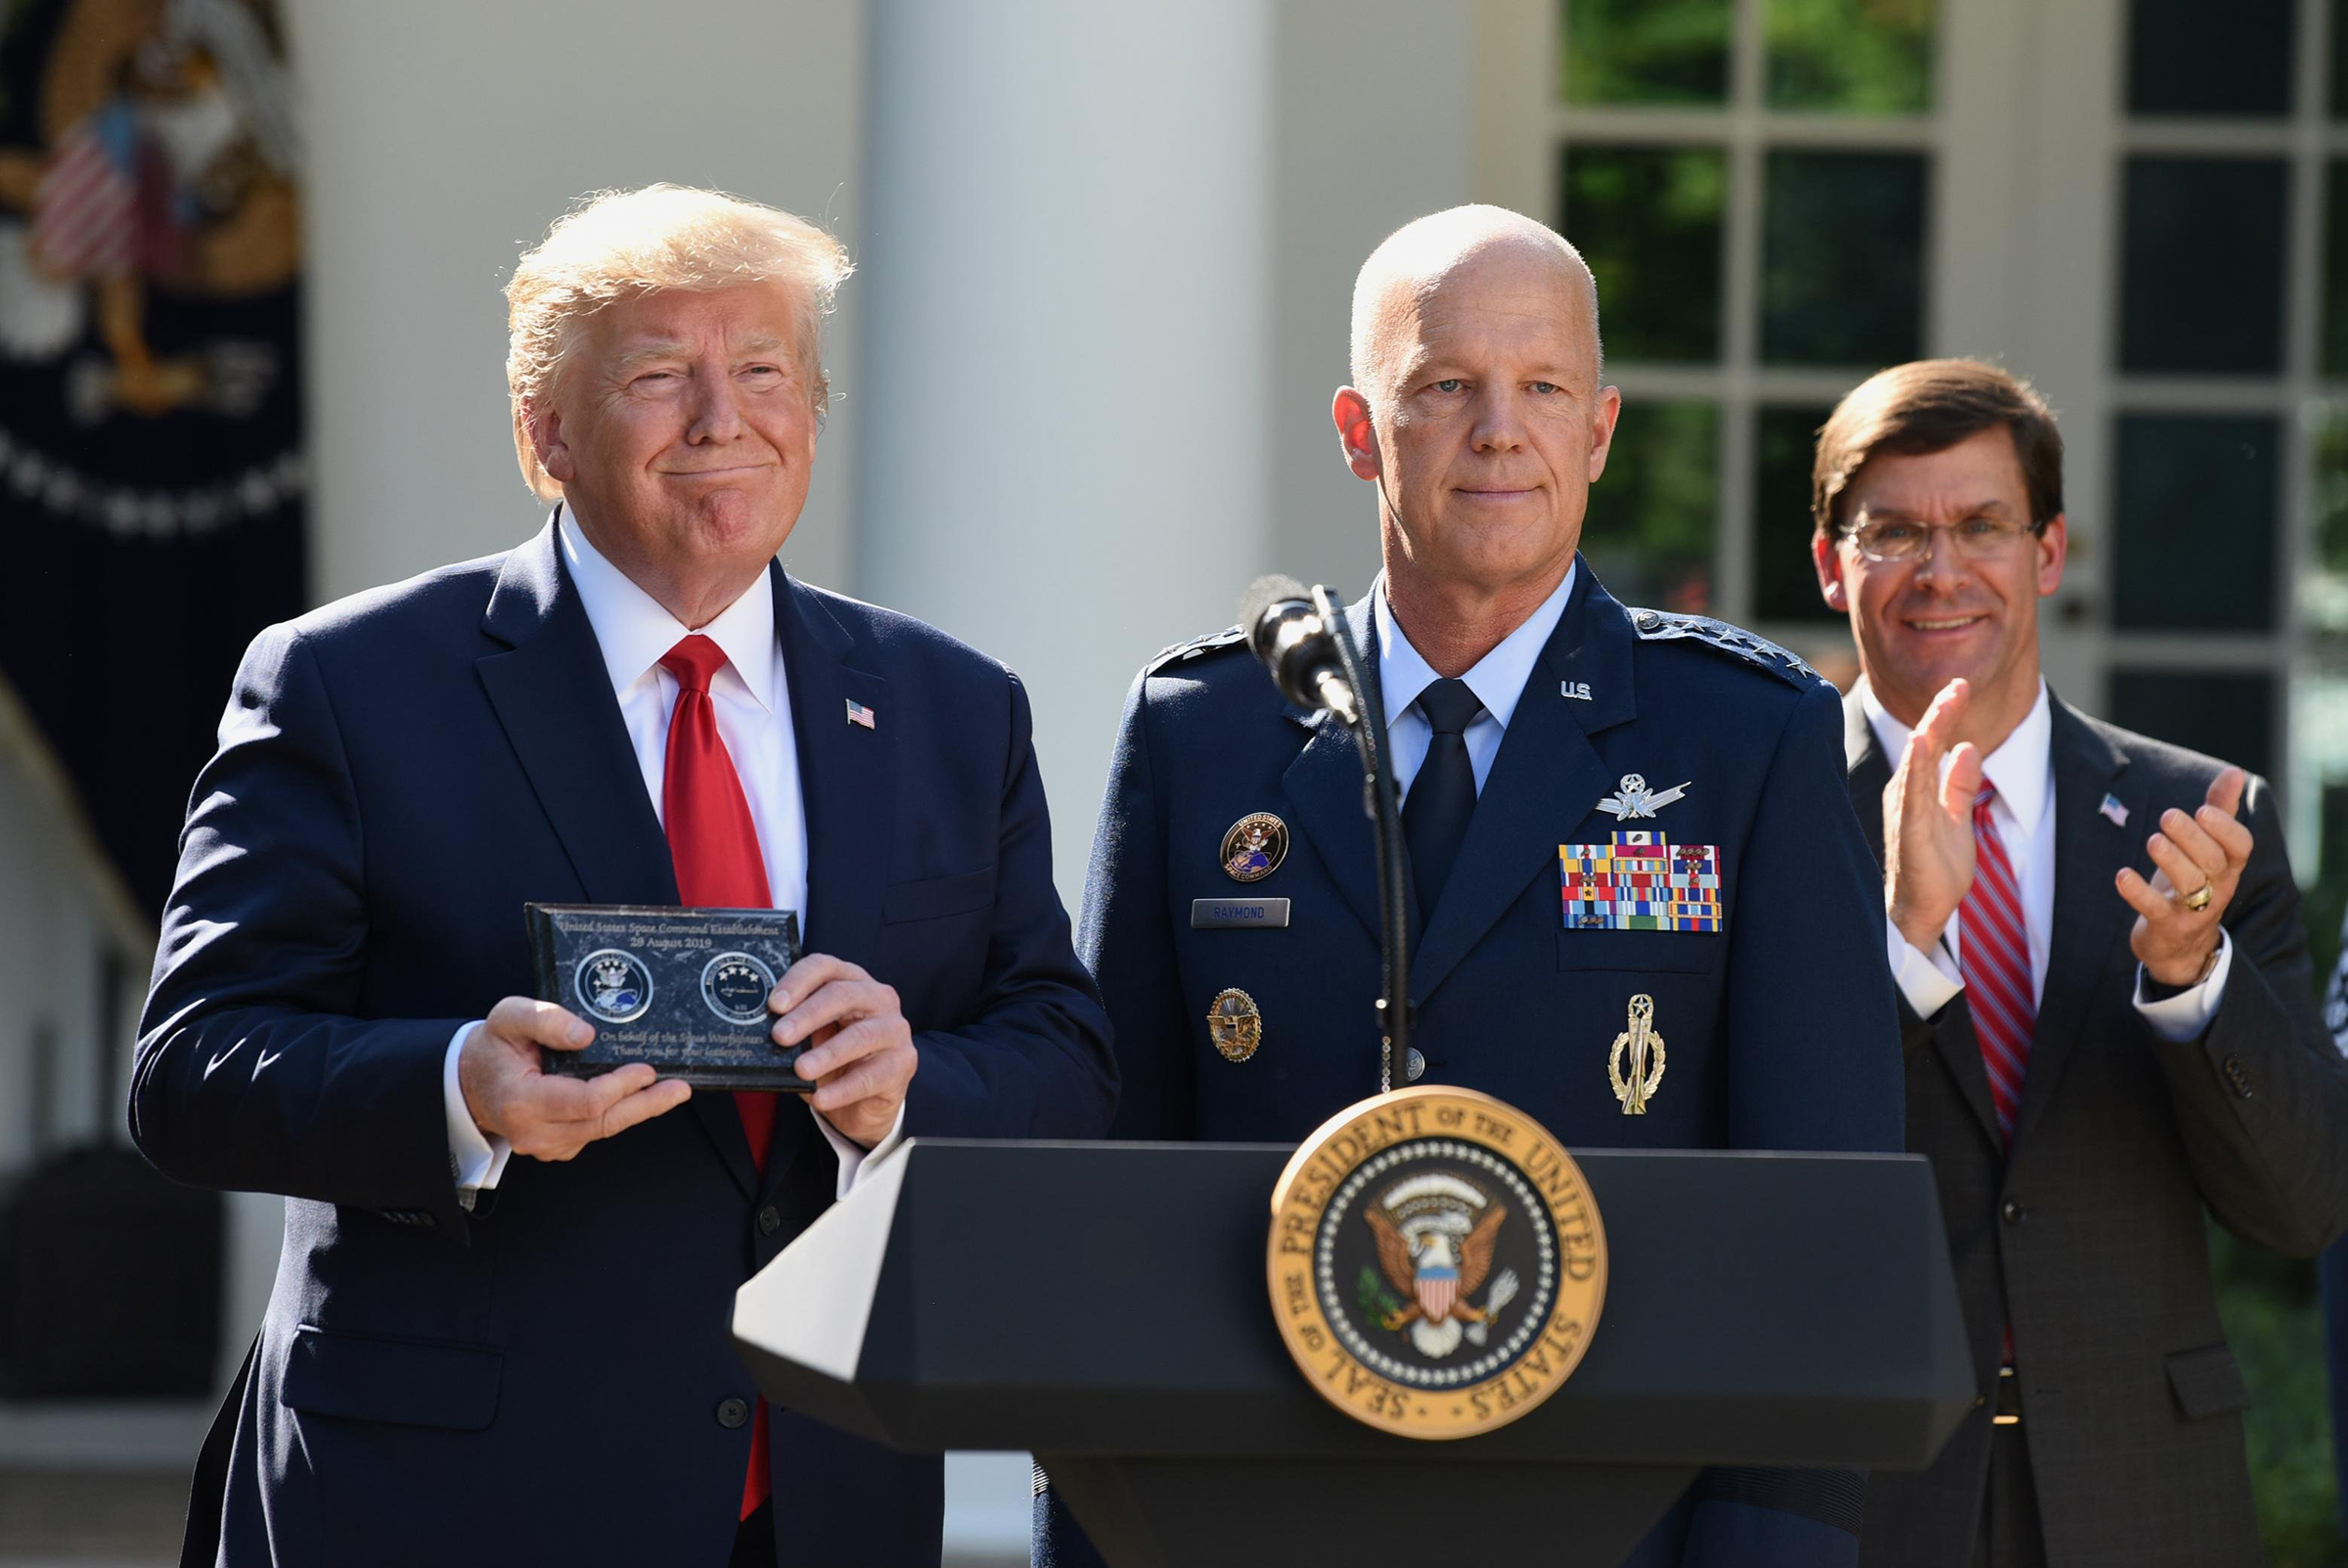 President Donald Trump and General John  Jay  Raymond attend a ceremony marking the establishment the U.S. Space Command at the White House on Aug. 29, 2019.